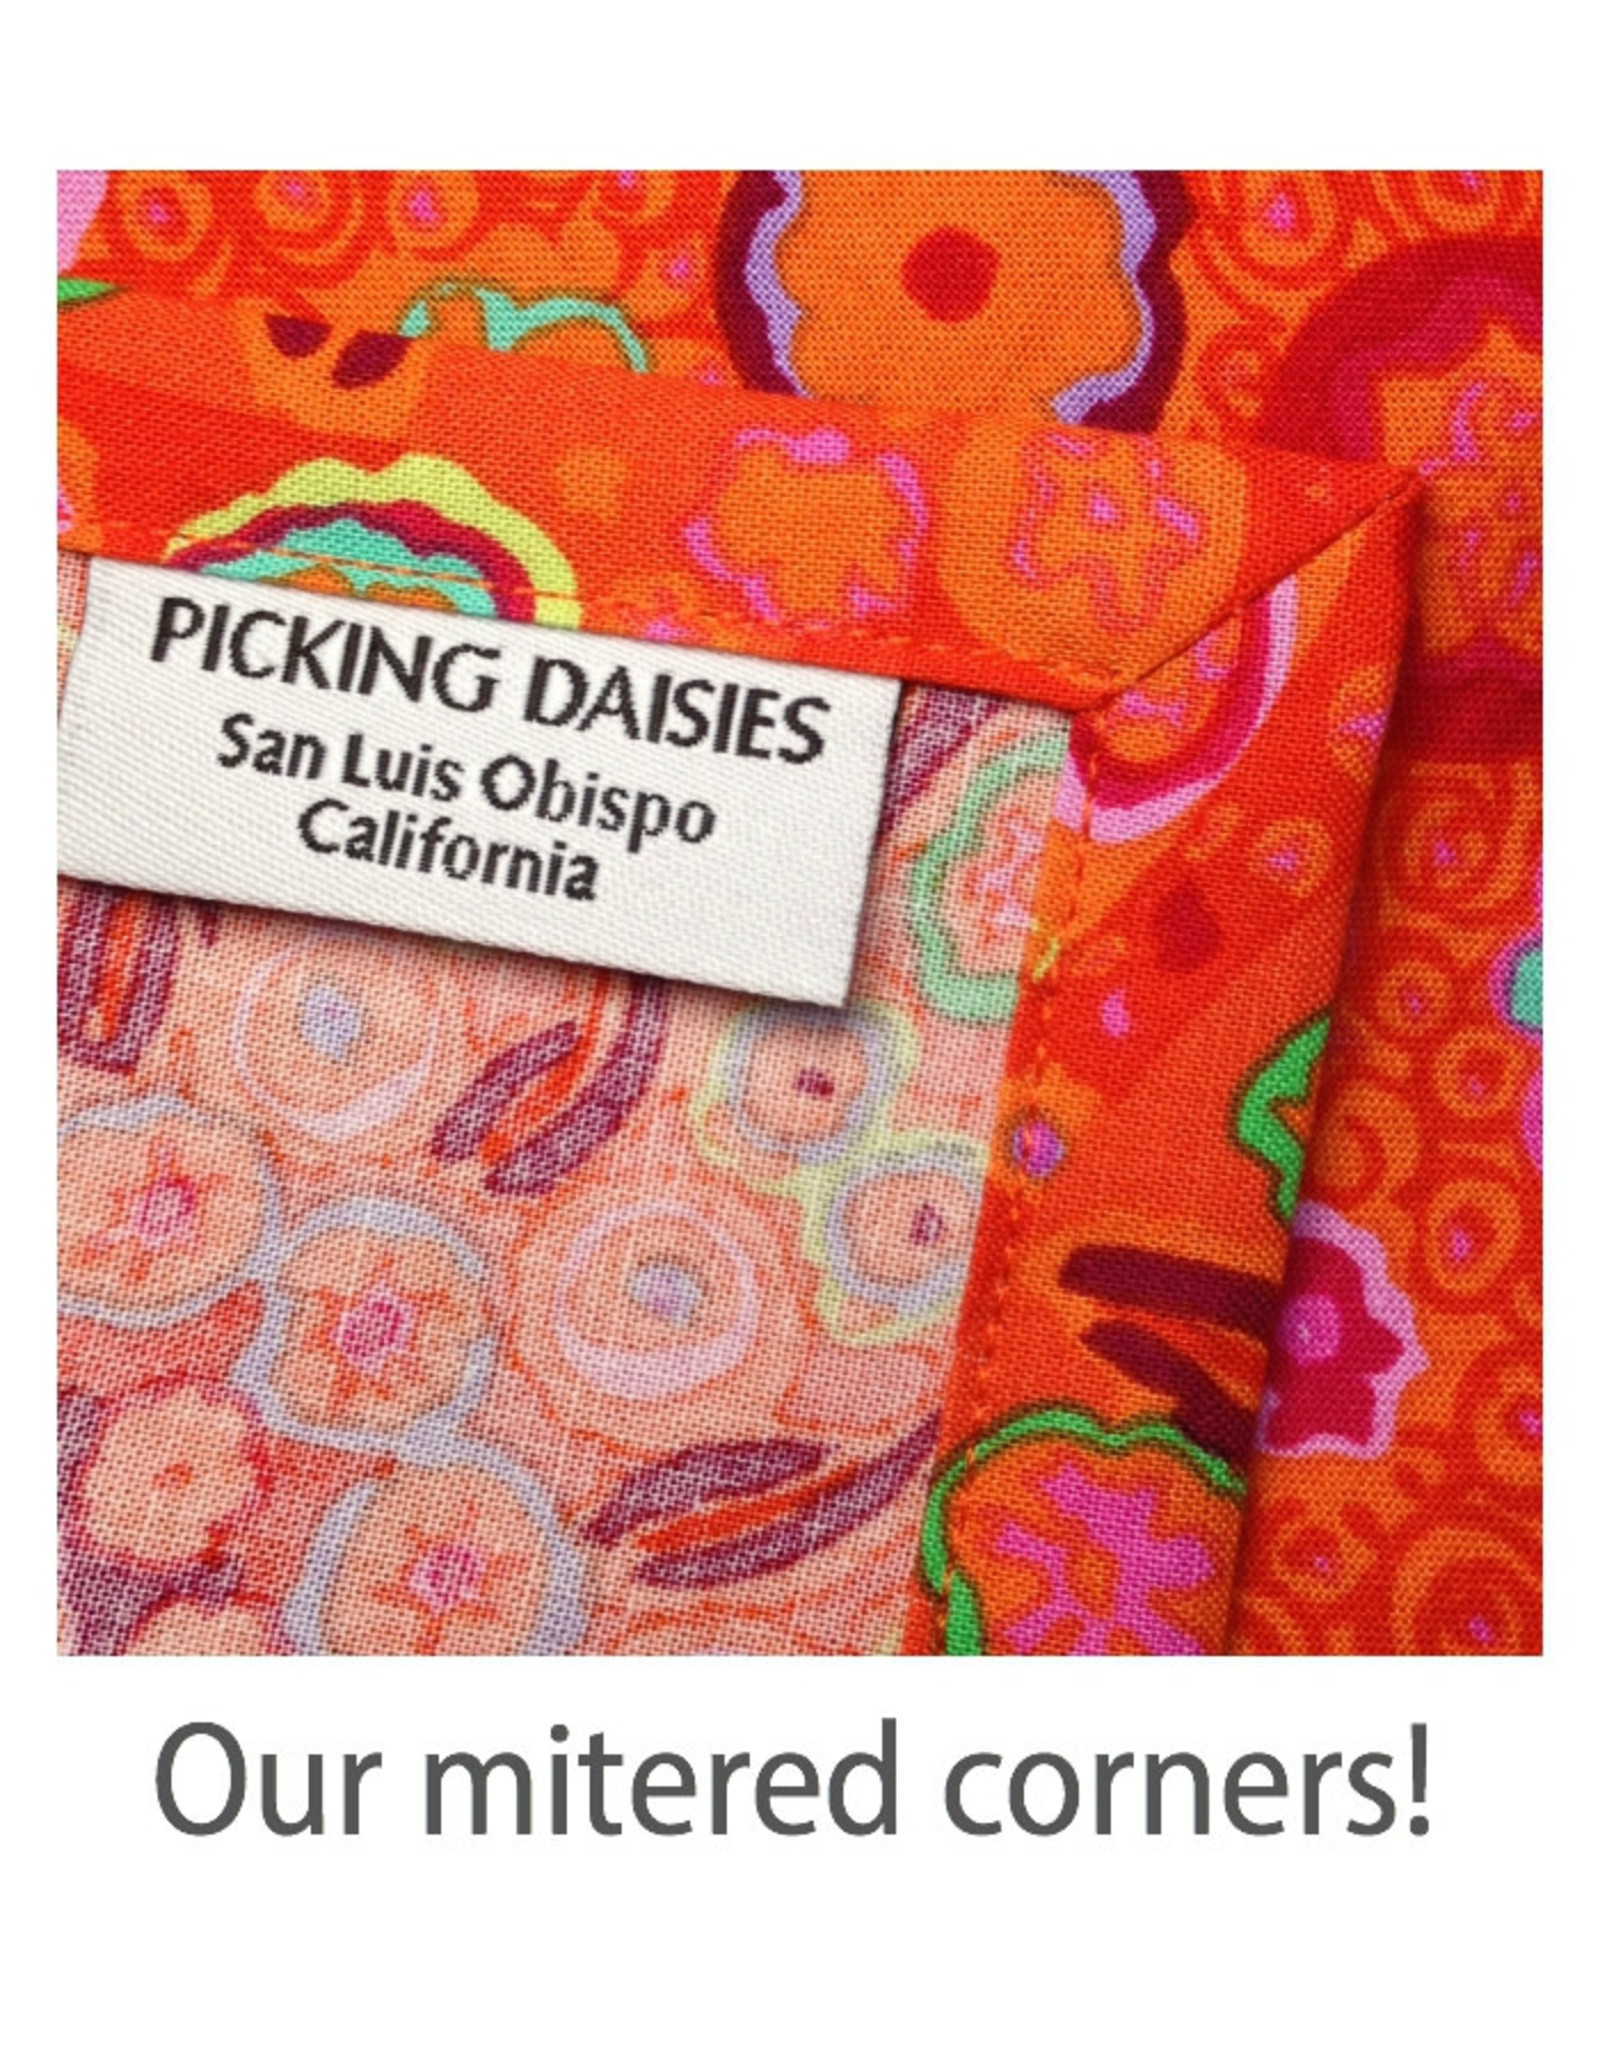 PD's Moda Collection Lipstick Cowgirl, Vintage Crate Labels in Multi, Dinner Napkin